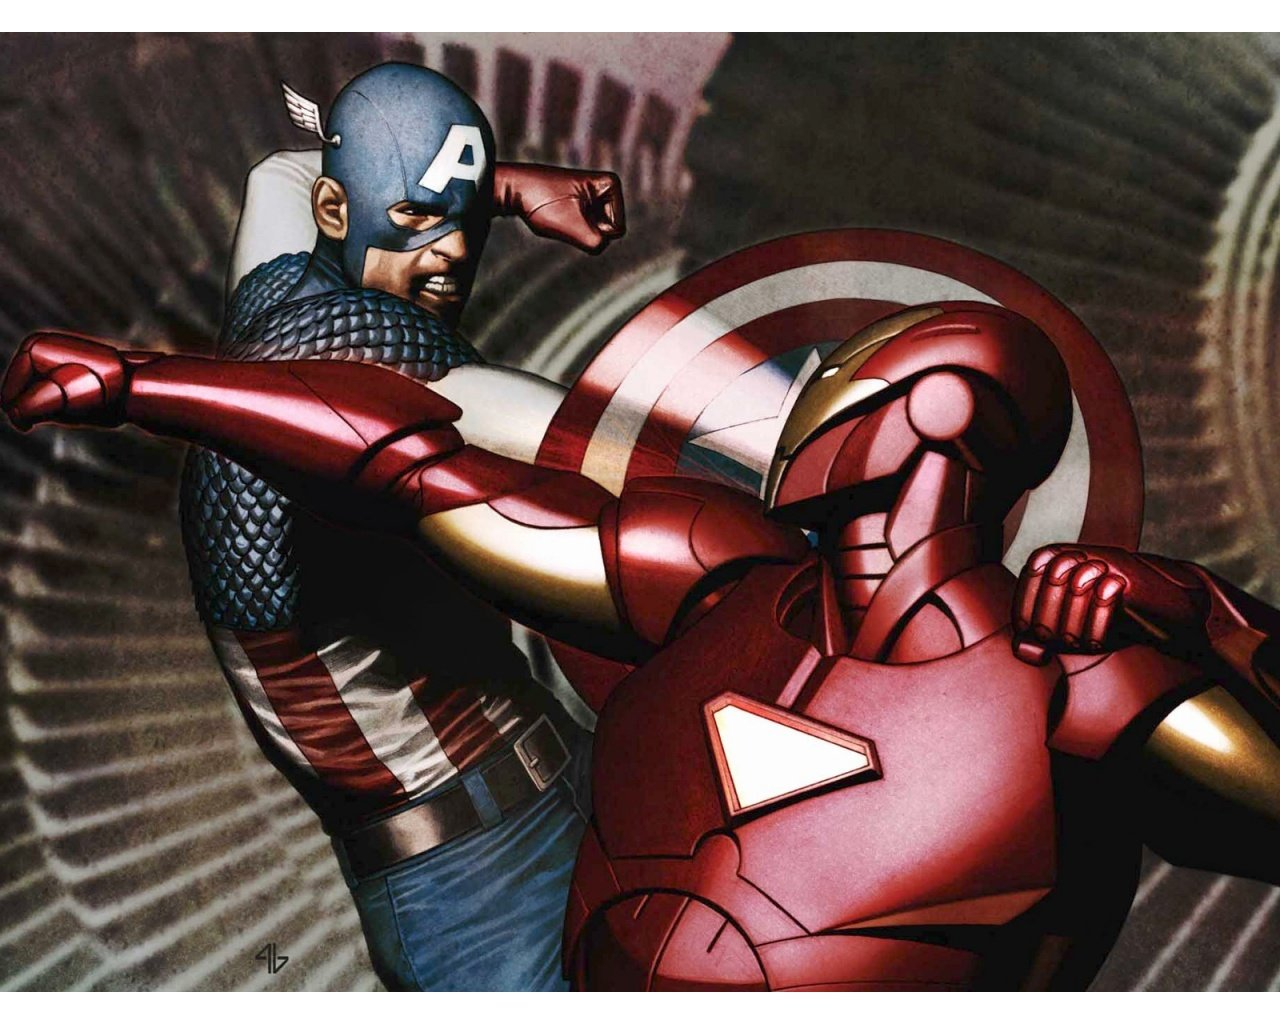 captain_america_vs_iron_man_wallpaper_2-1280x1024